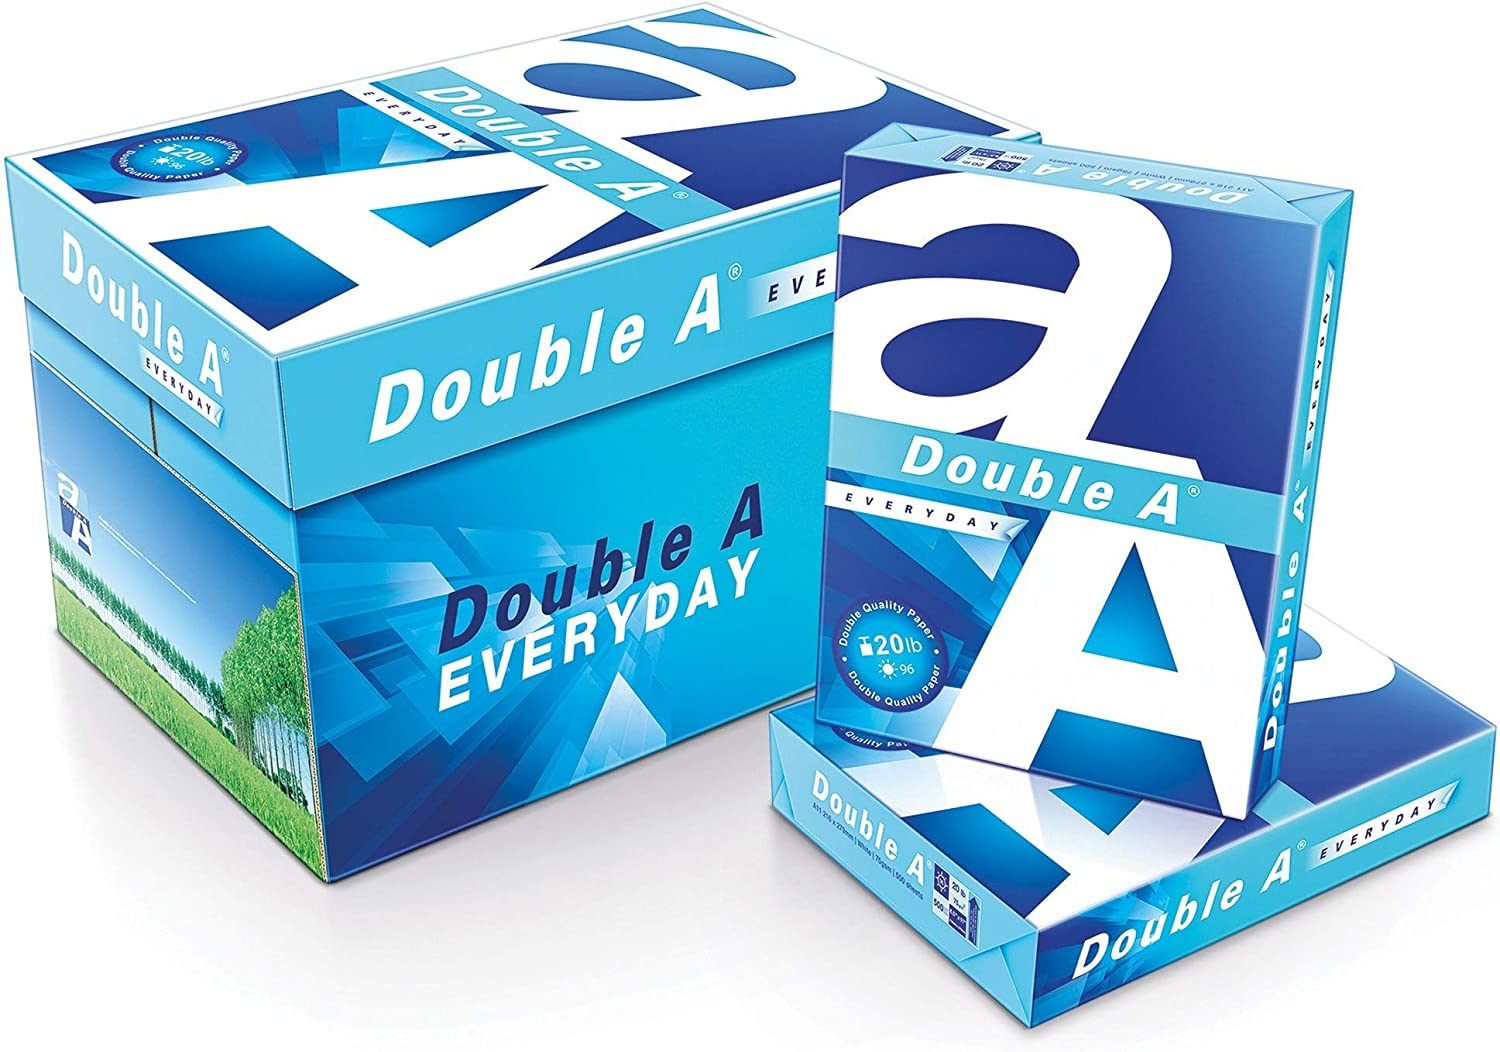 Double A Everyday Copy and Multi-Use Paper Brightness Letter Size 20 Lb U.S. Carton of 10 Reams 8 1//2 x 11 96